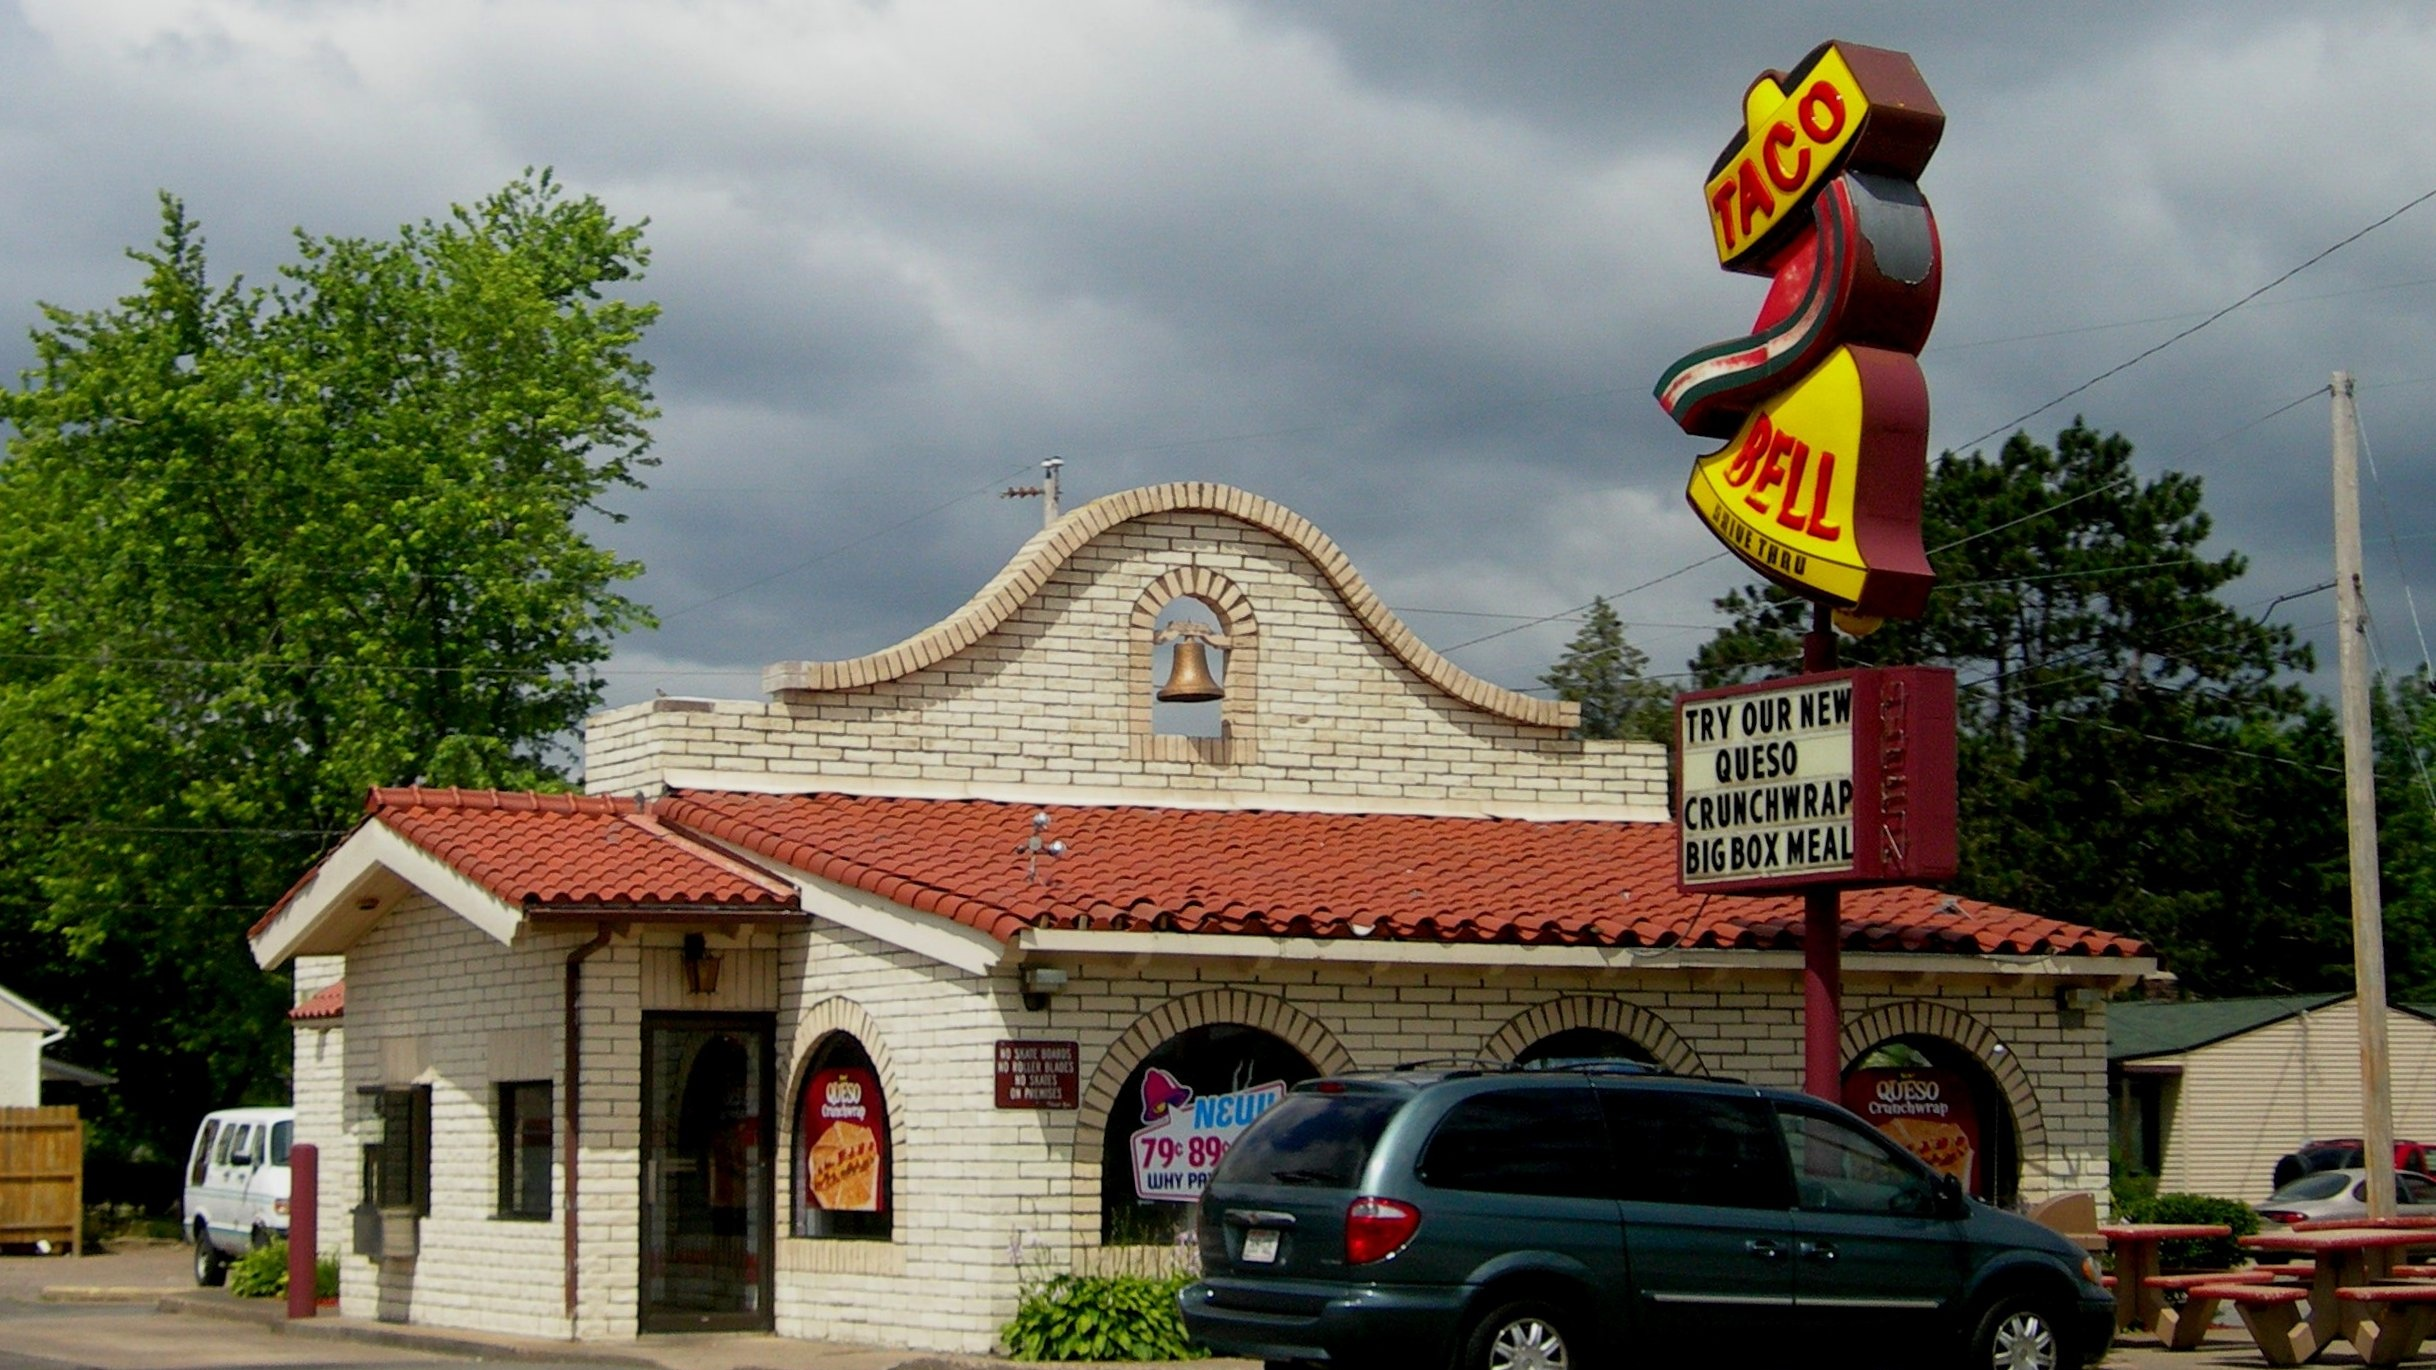 Taco_Bell_in_Wausau,_Wisconsin Cropped